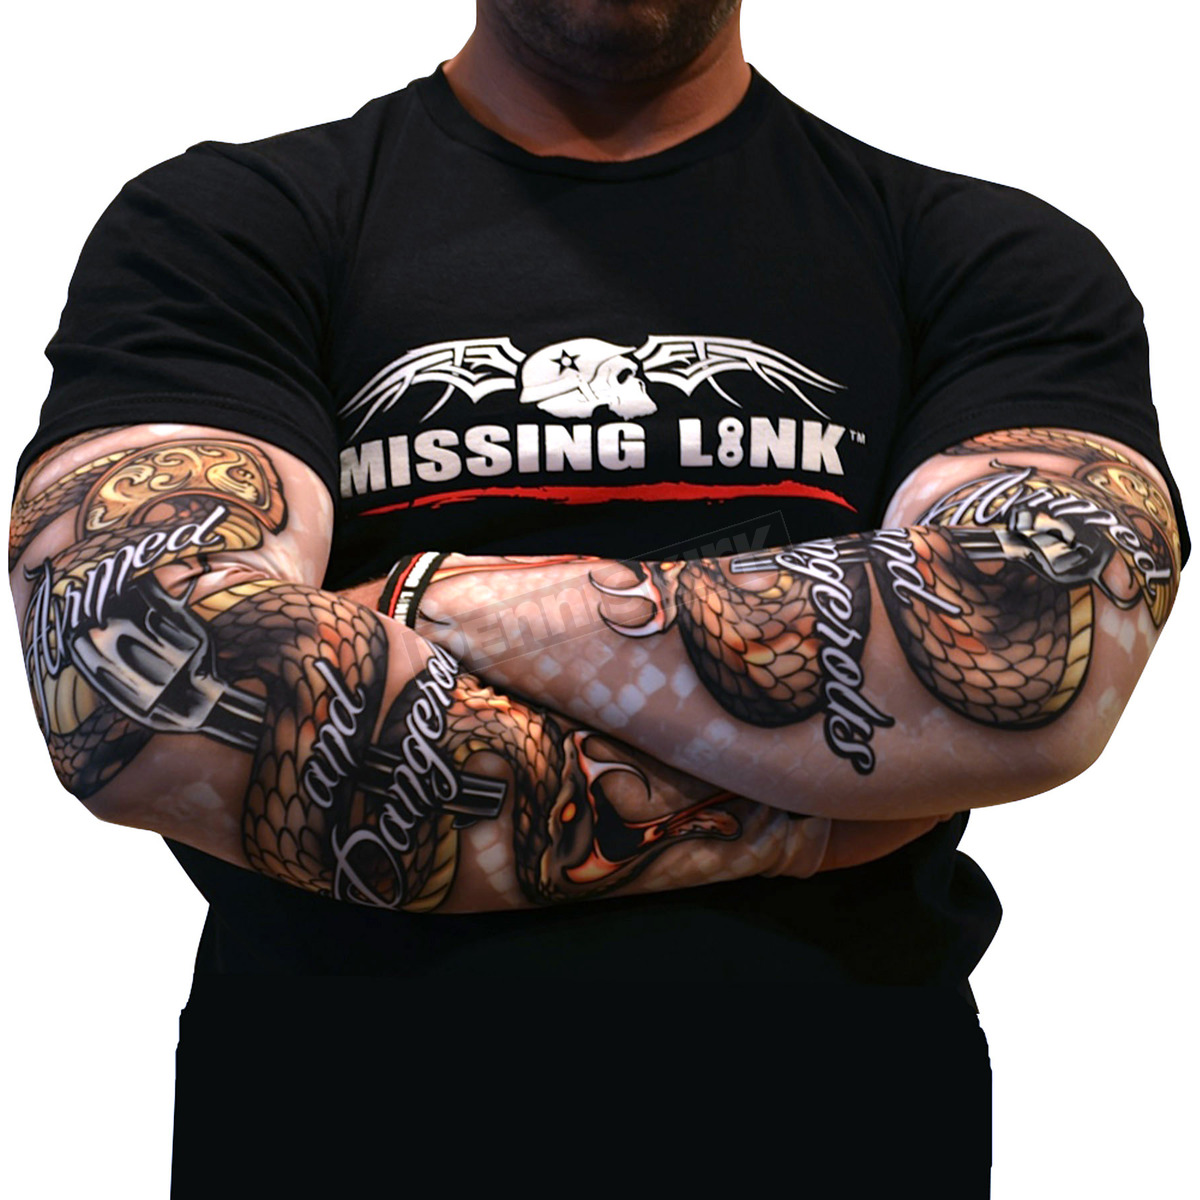 Missing link armed and dangerous gunz tattoo sleeves apads harley